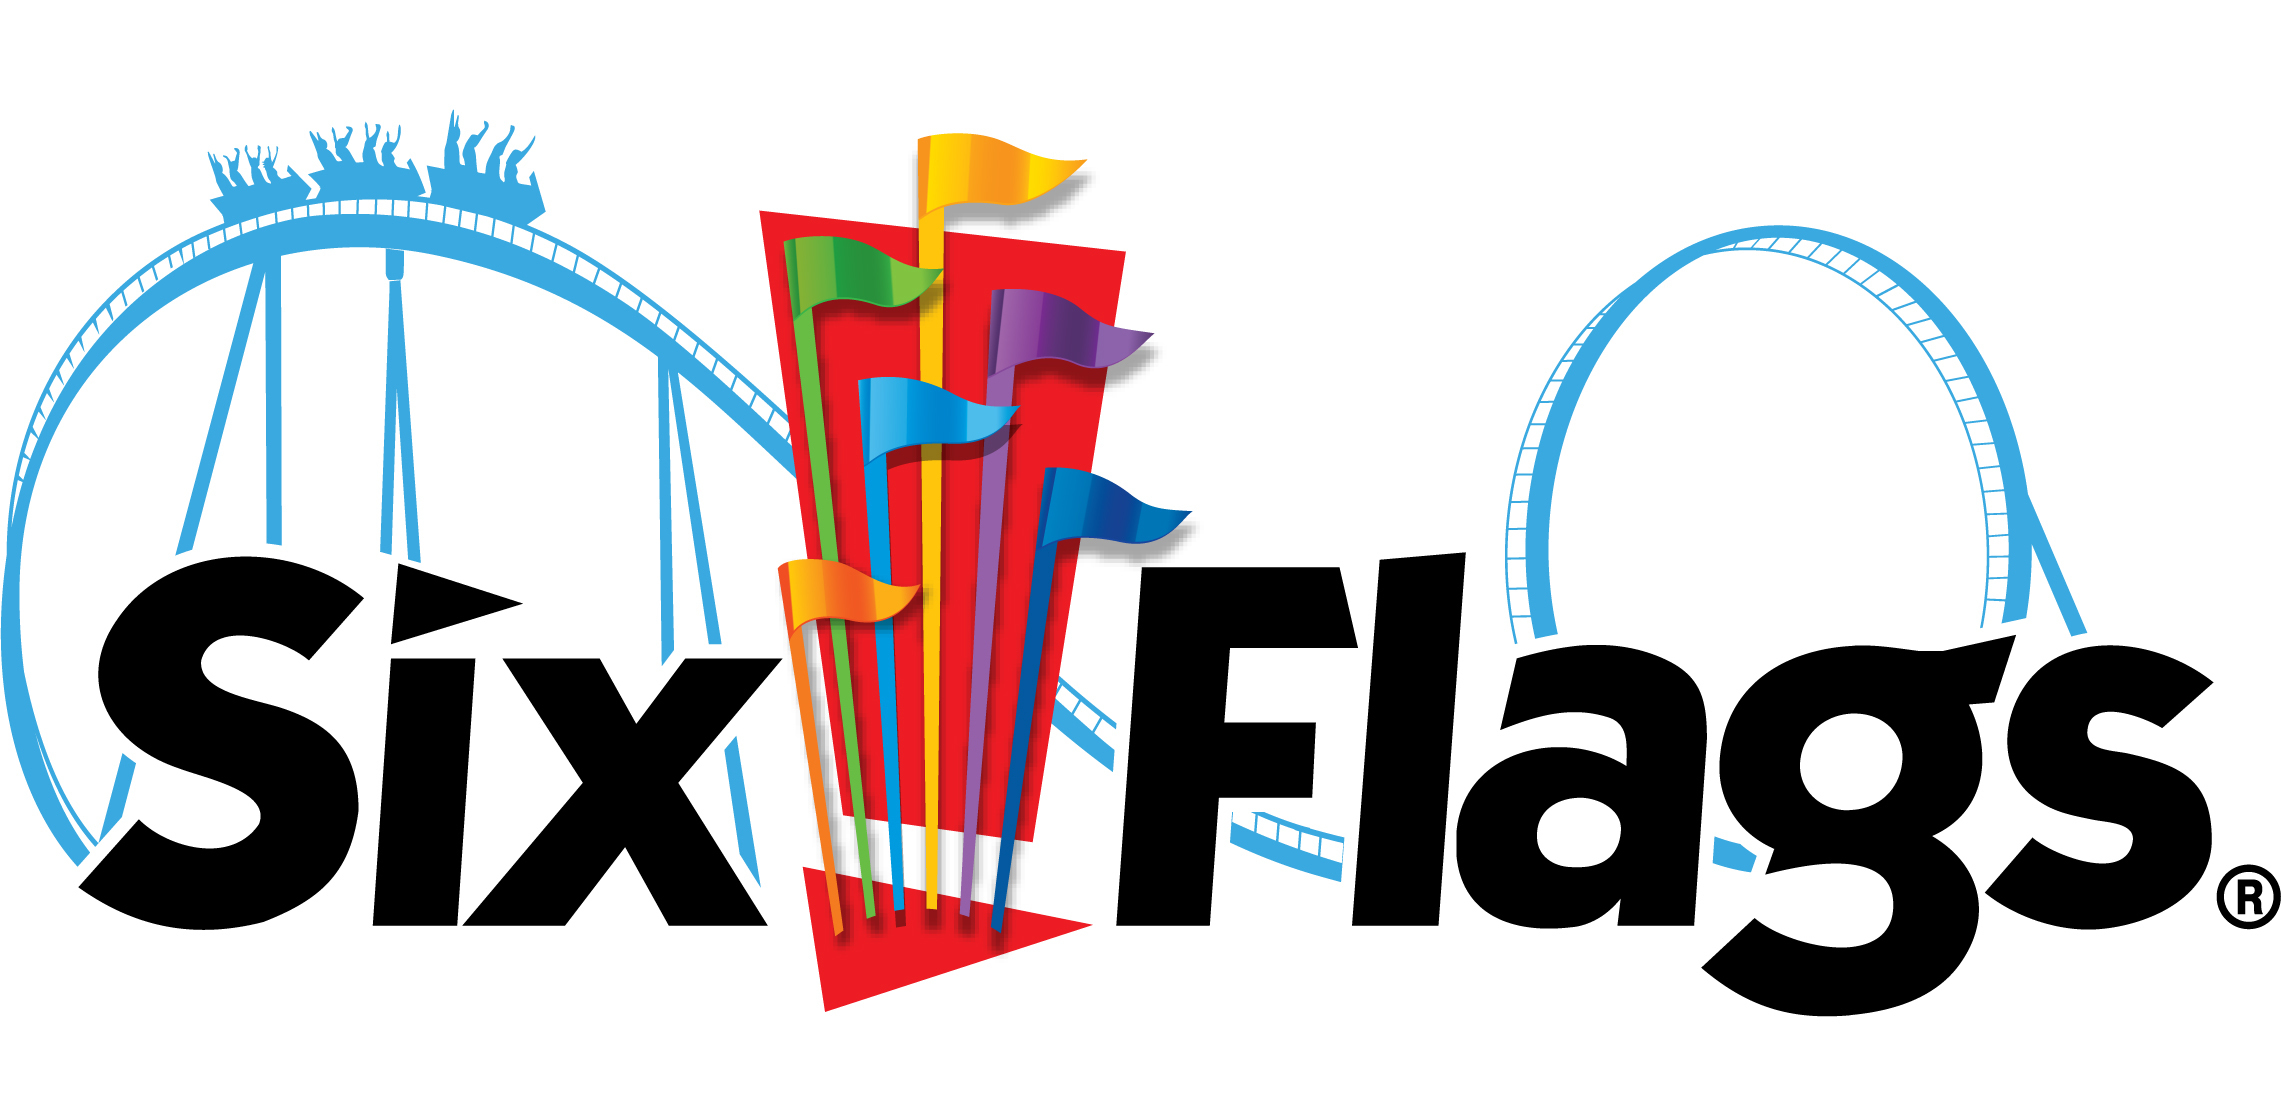 Record Breaking Coasters State Of The Art Waterslides And Immersive Family Thrills Headed To Six Flags Parks In 2020 Business Wire